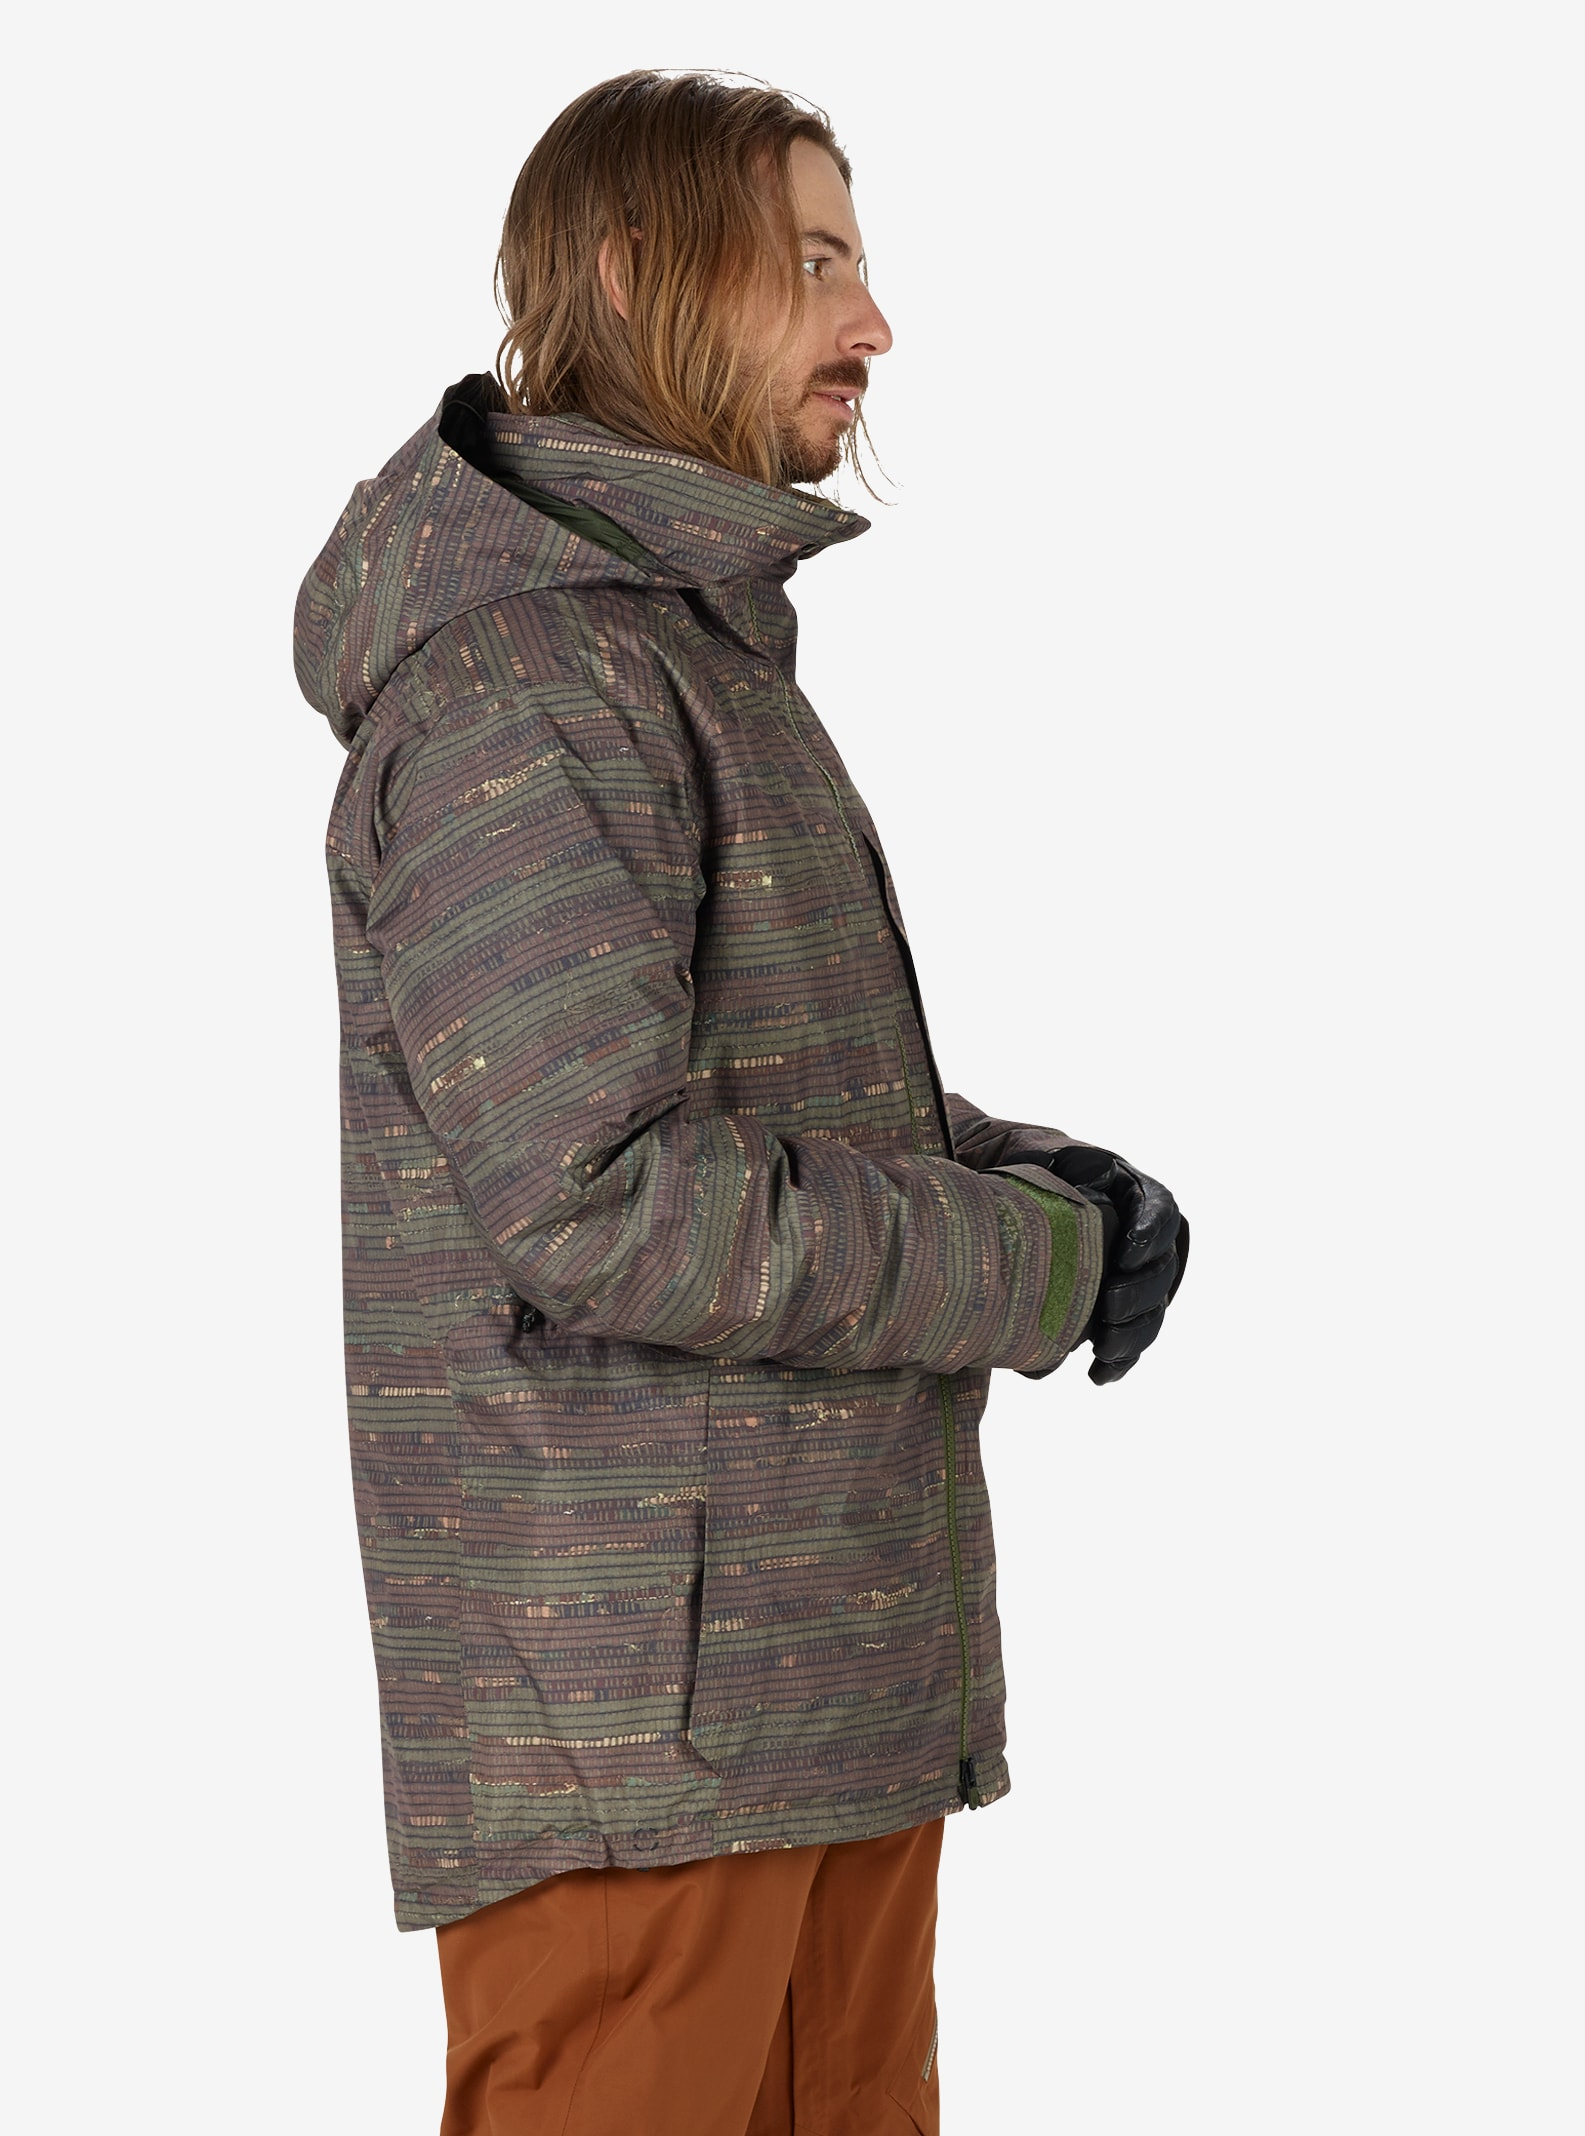 Men's Burton [ak] 2L LZ Down GORE‑TEX® Jacket shown in Shred Camo